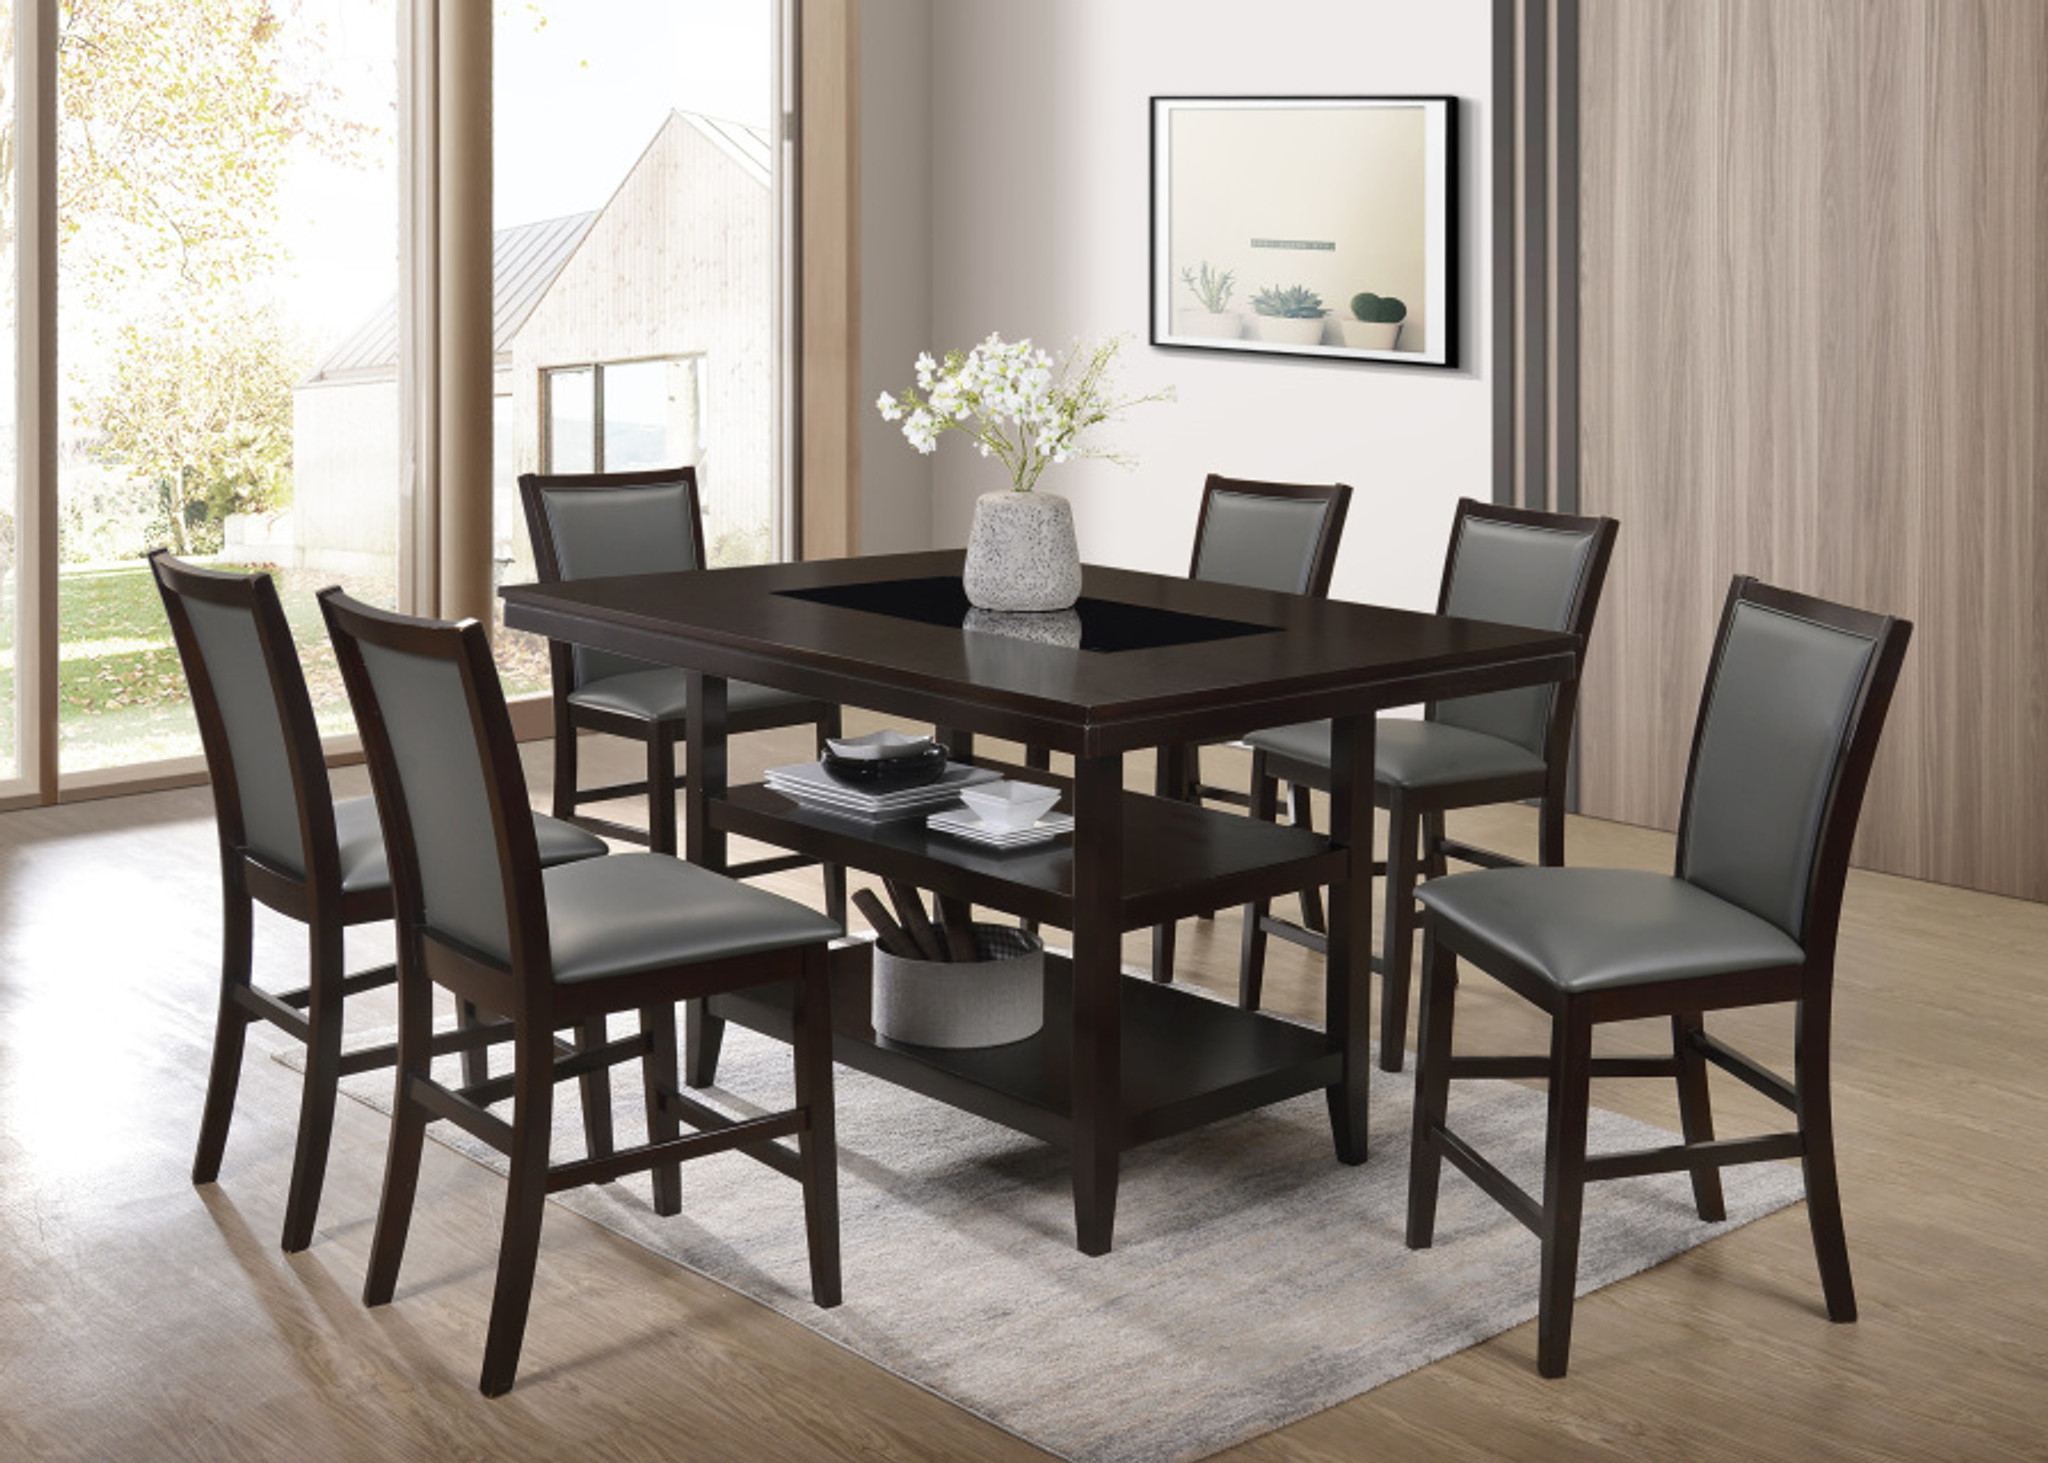 CONDOR COUNTER HEIGHT DINING TABLE 7 PCS SET